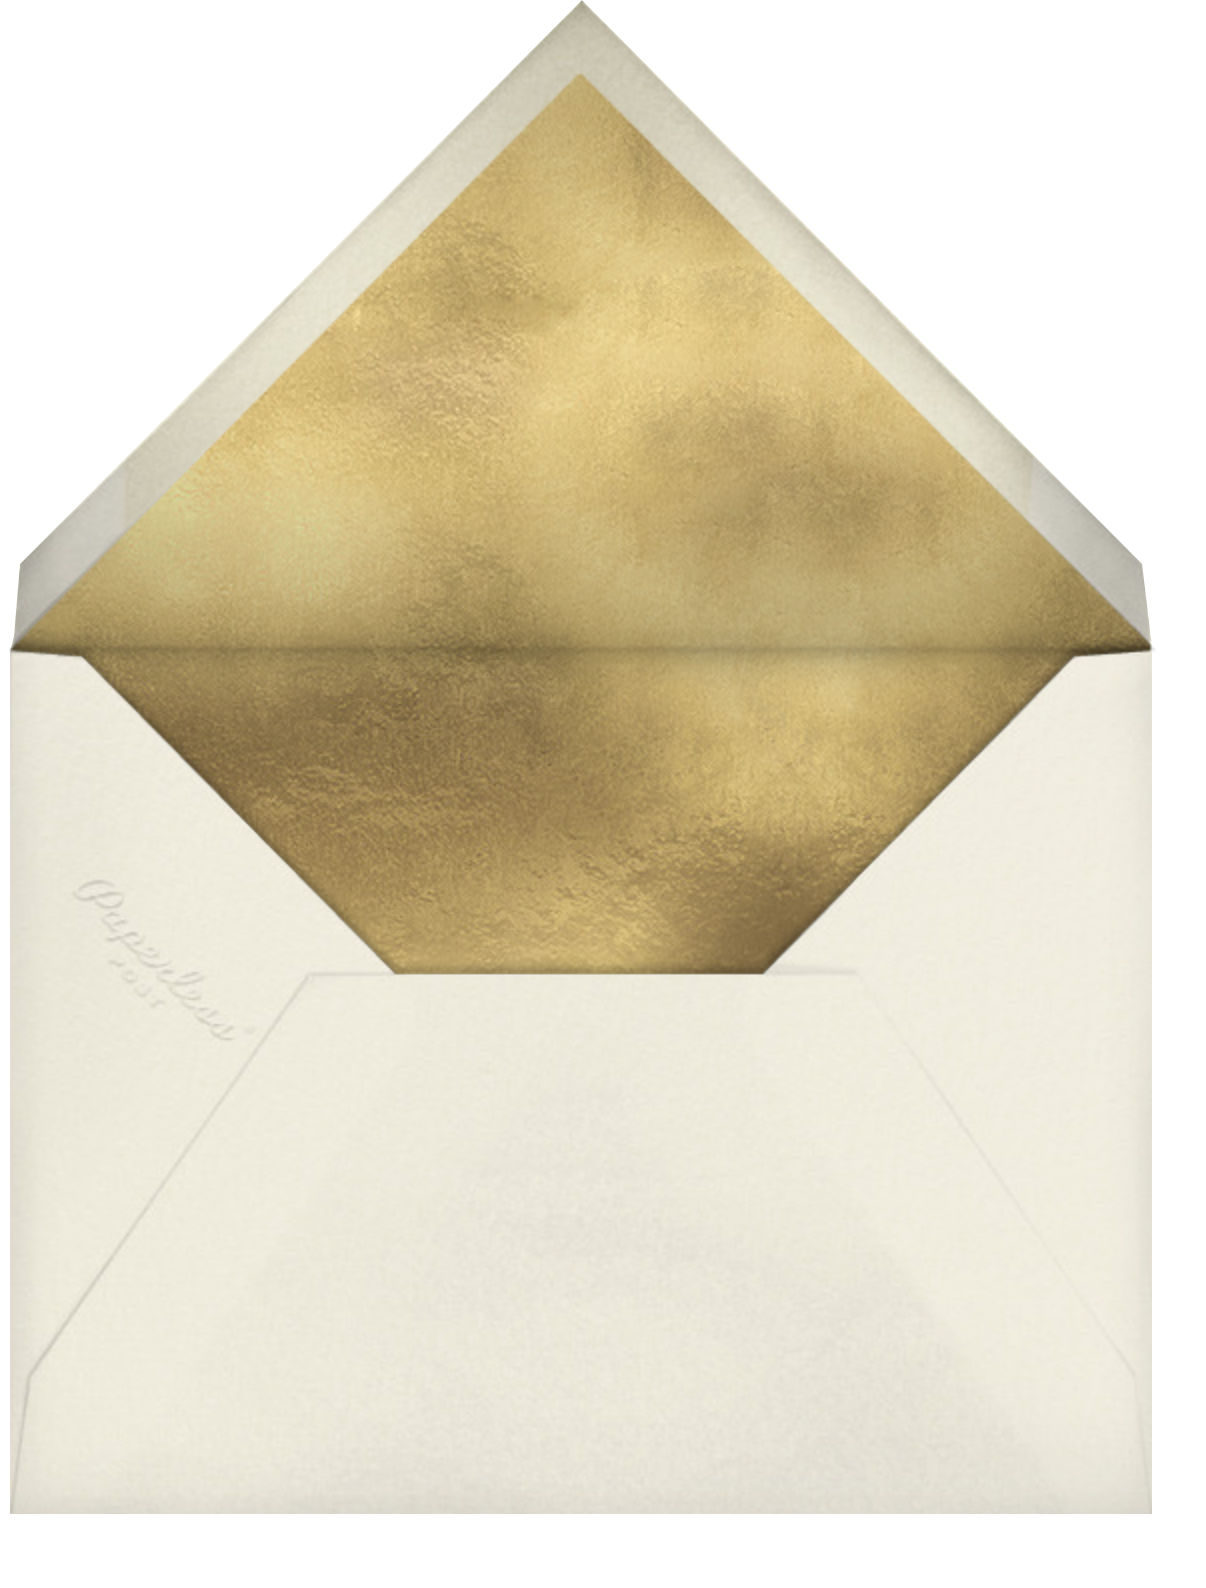 Glam Croc - Gold - kate spade new york - New Year's Eve - envelope back